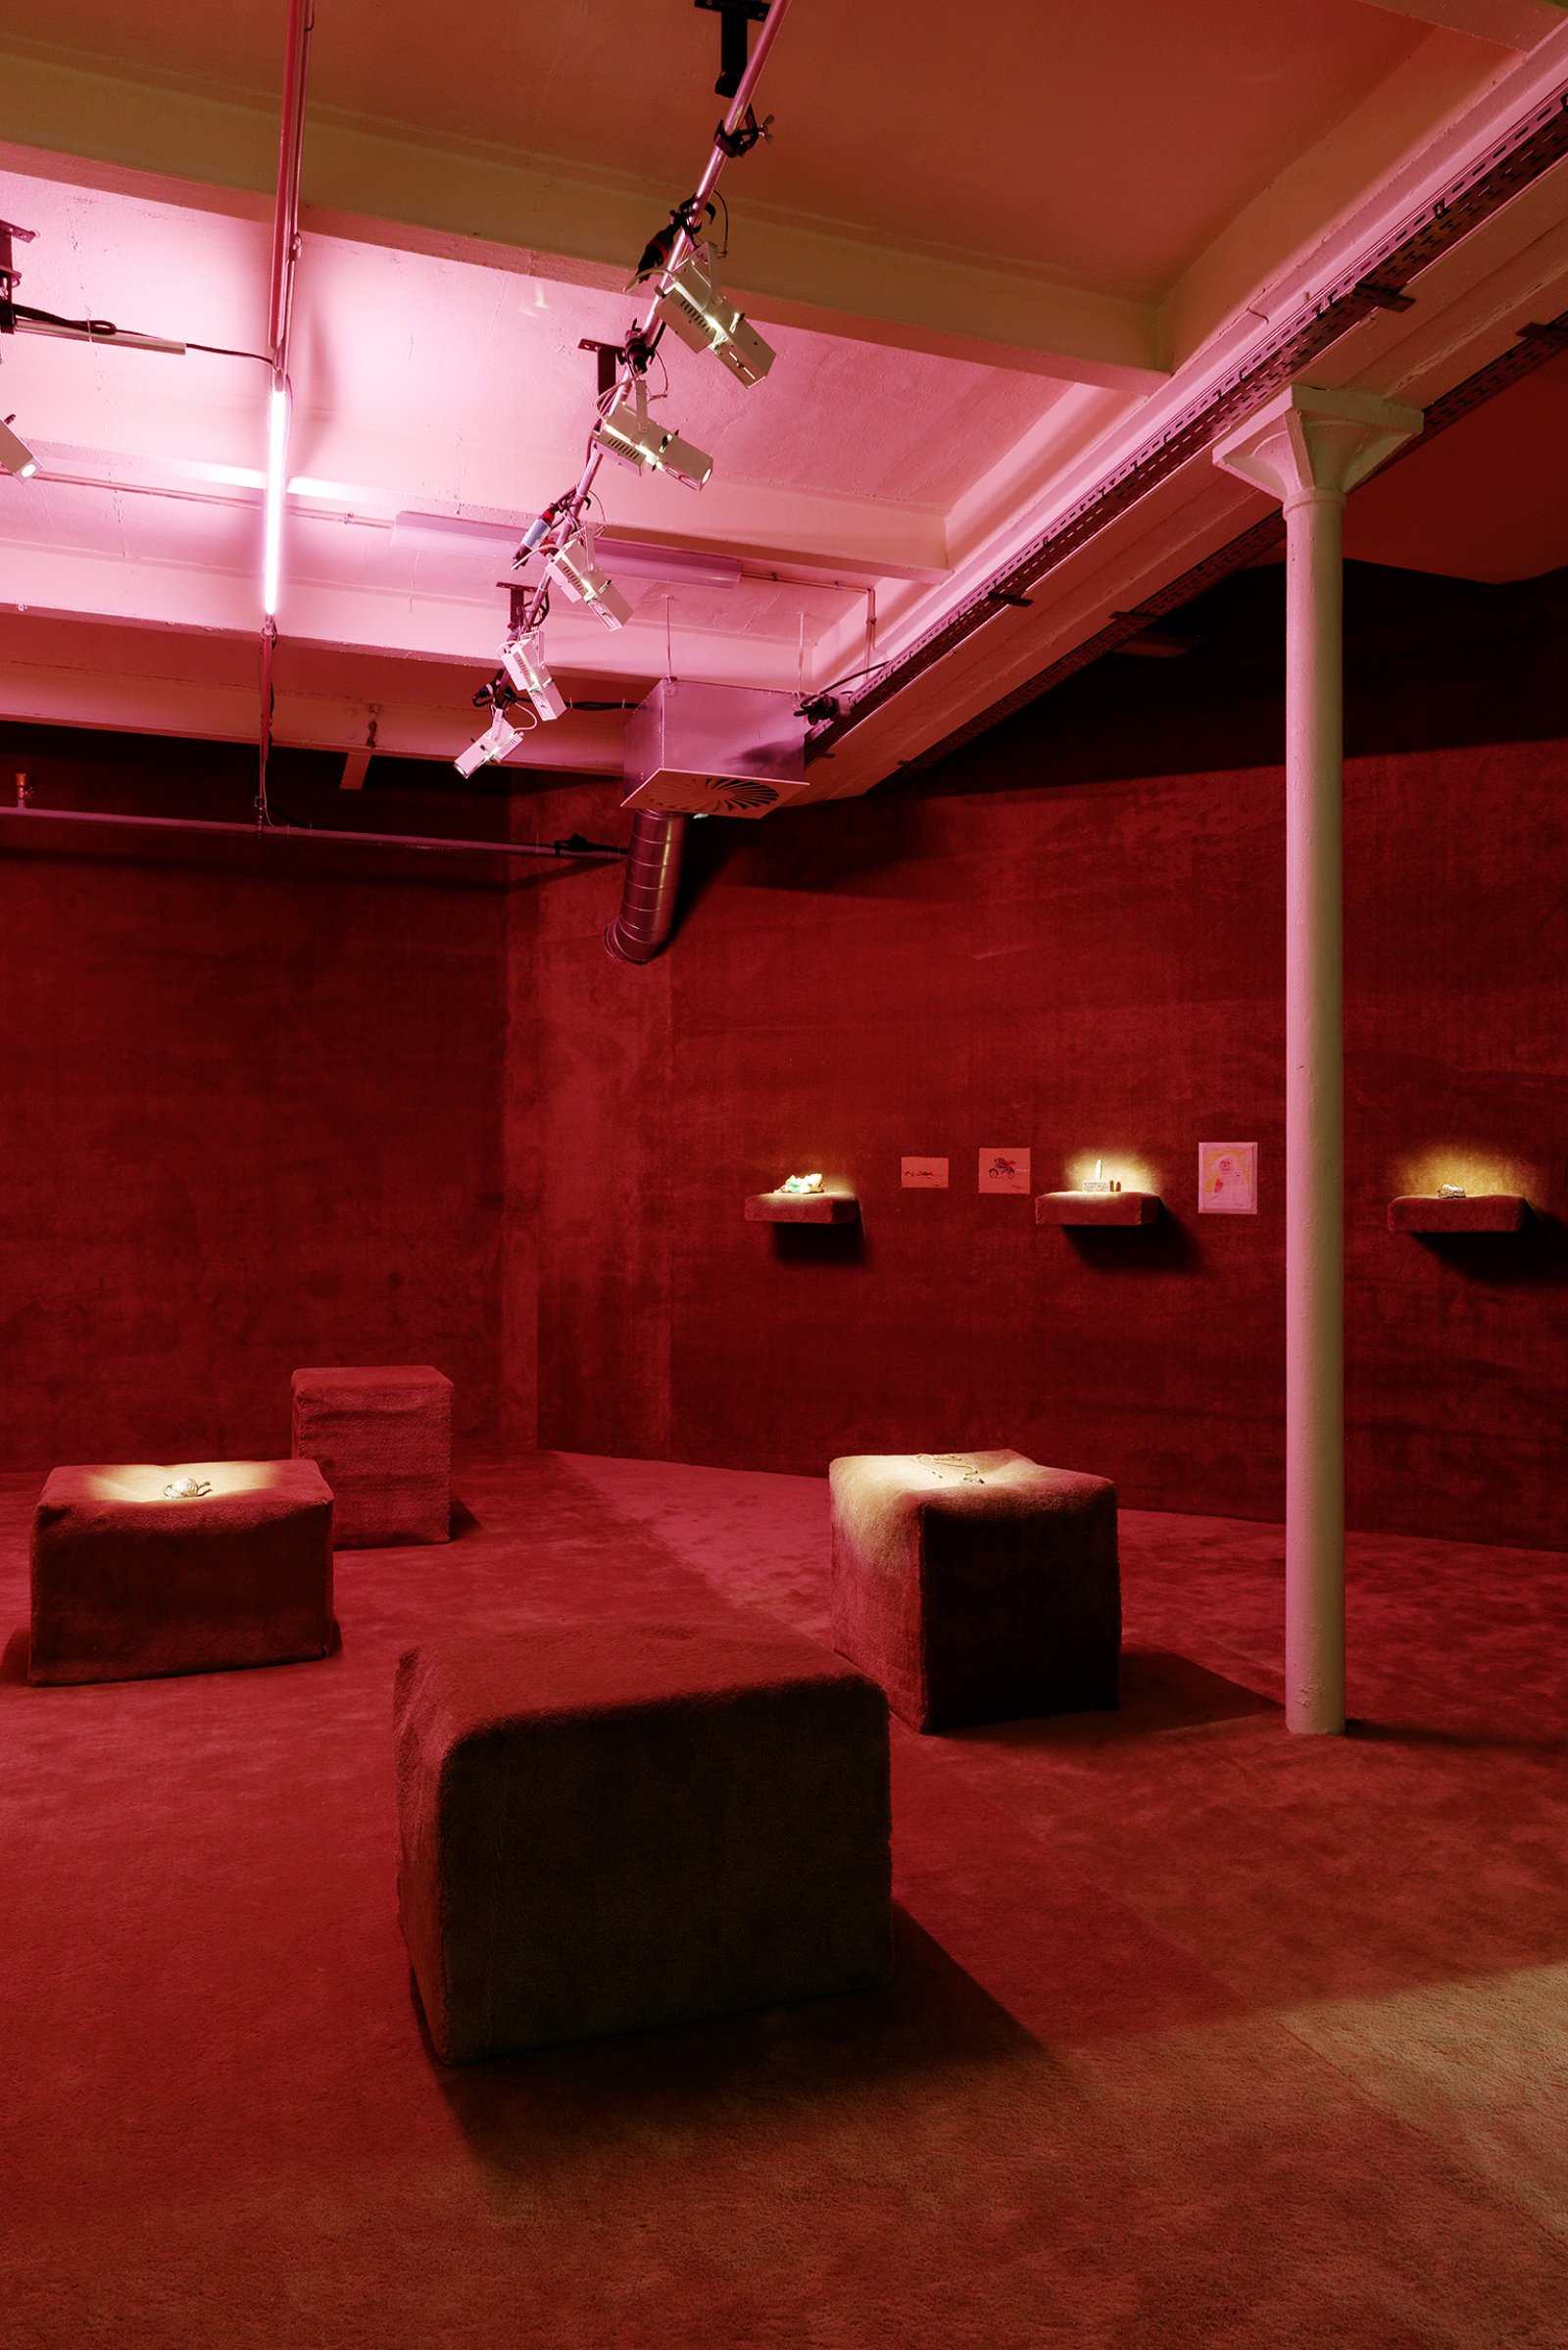 Laure Prouvost, installation view, No Fear, No Shame, No Confusion, Triangle France, Marseilles, 2013 by Liz Magor